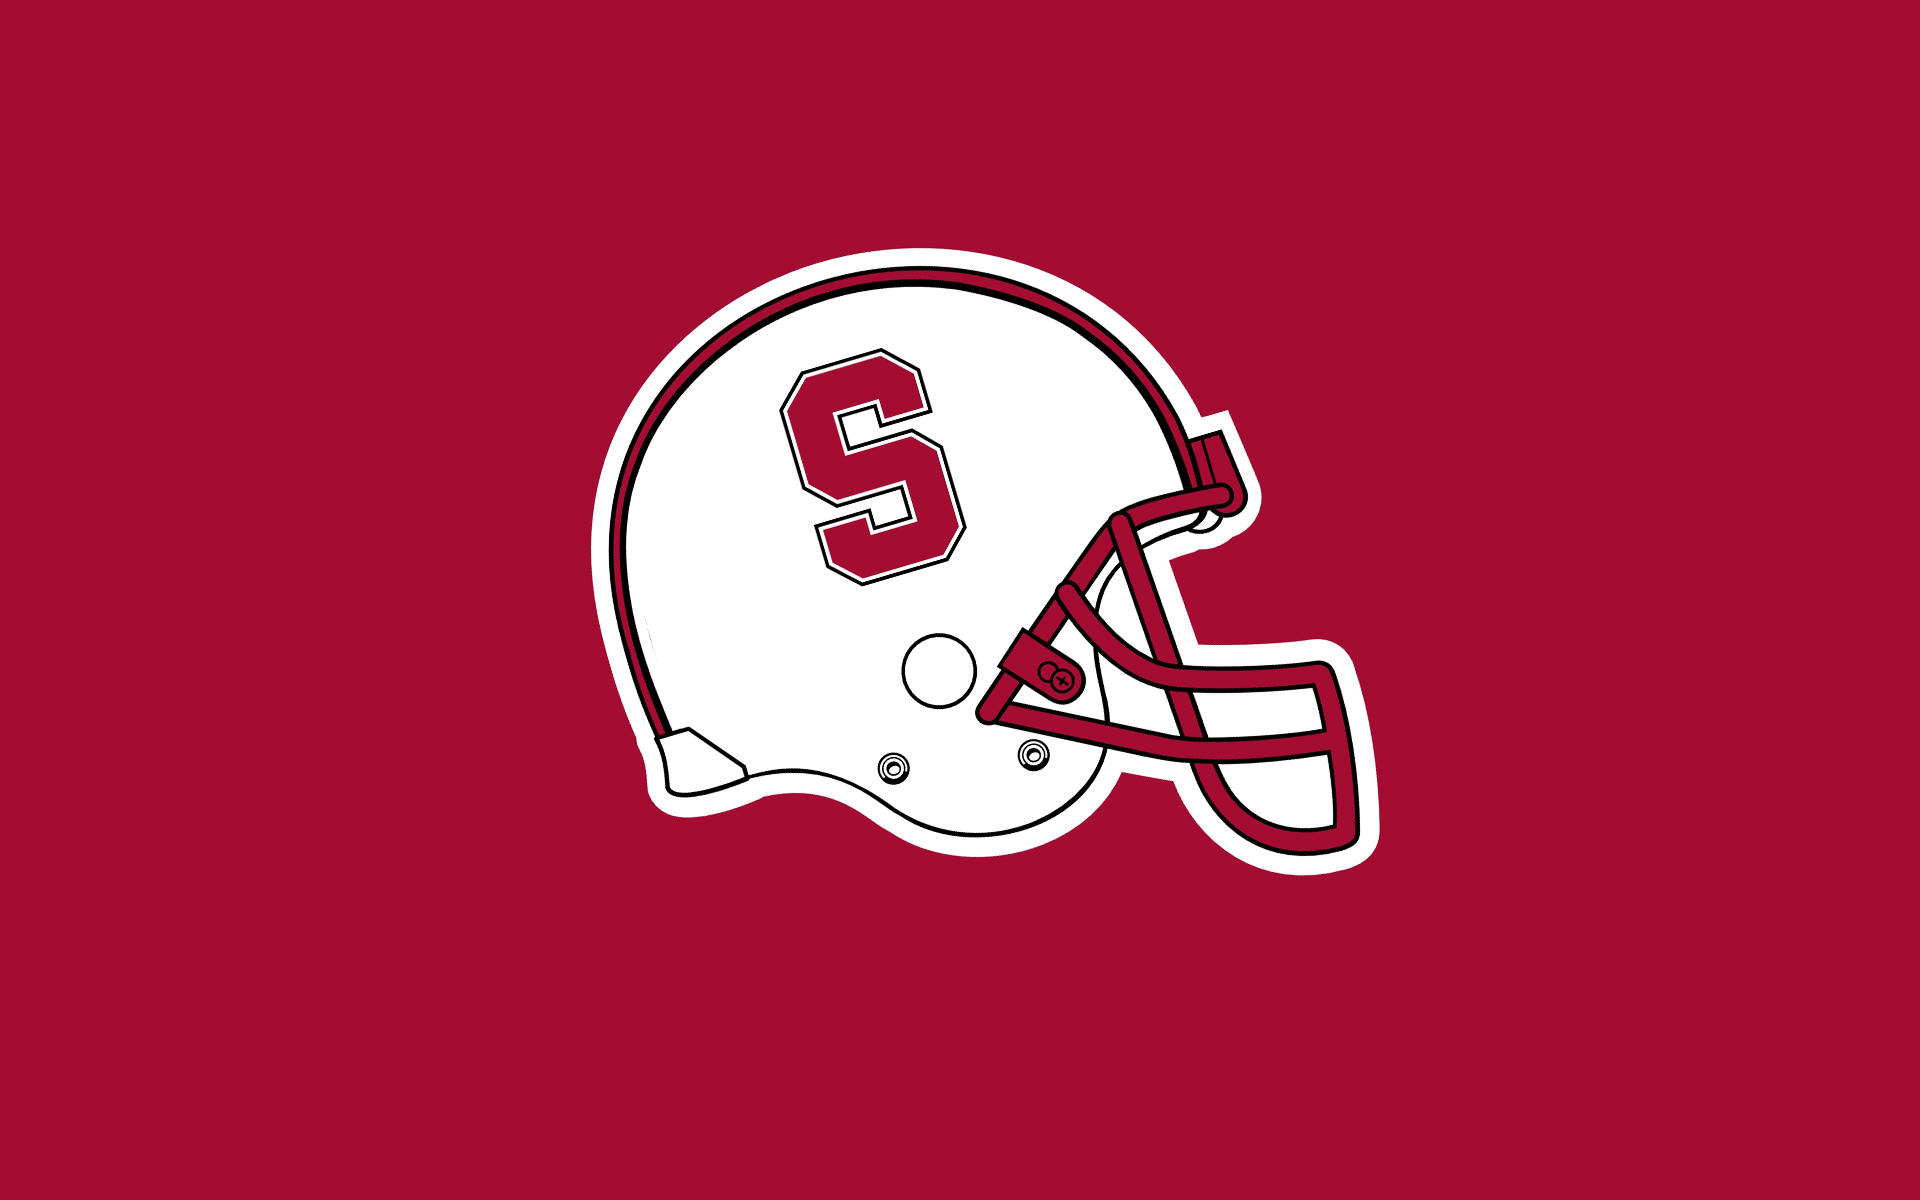 all college logos wallpapers - photo #42